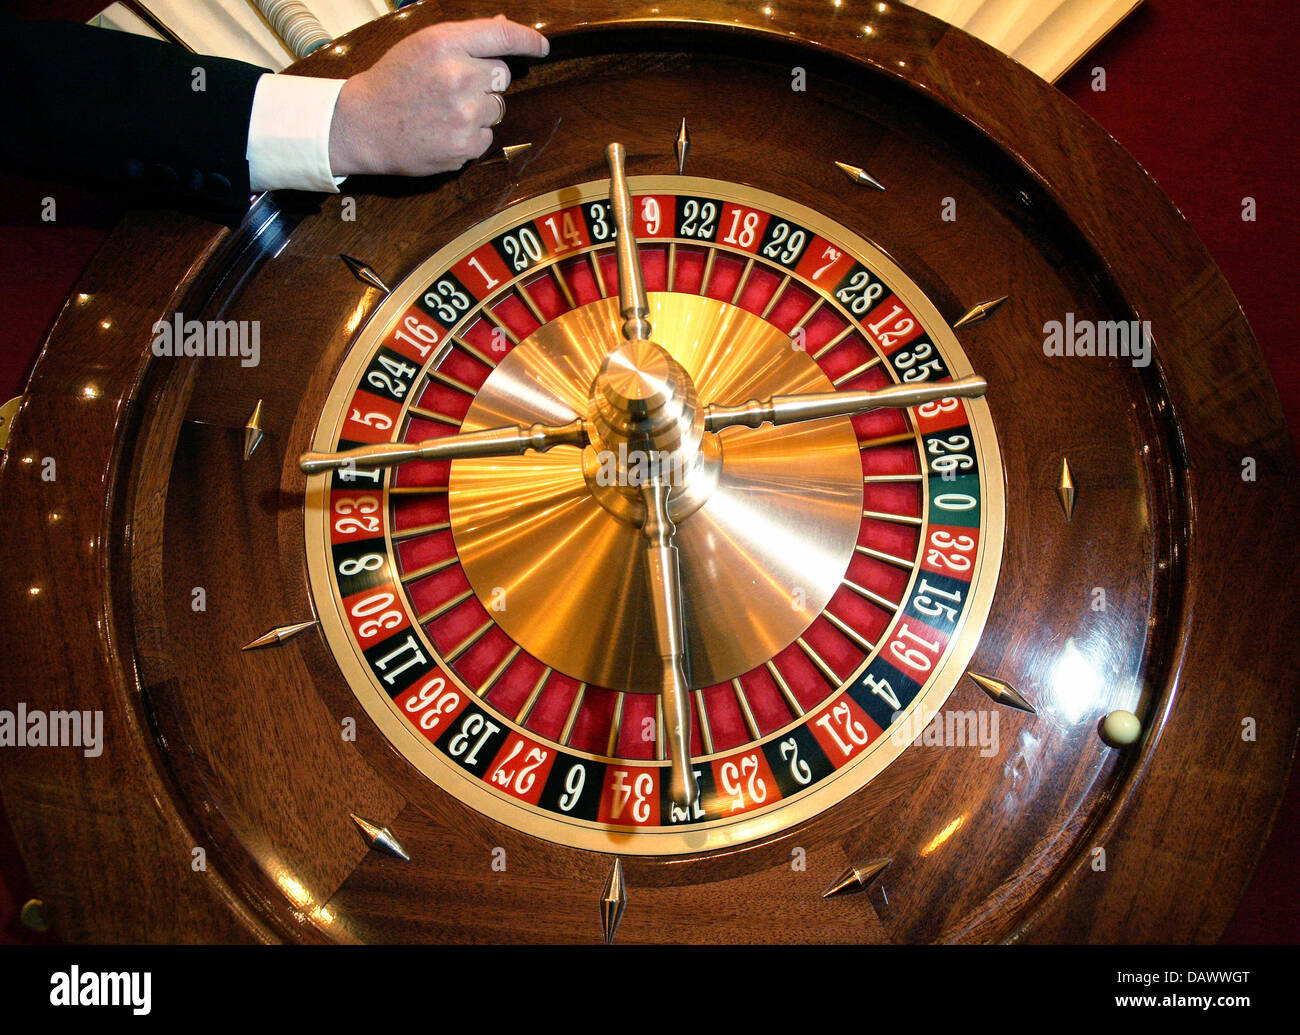 Spinning roulette wheel at a casino casino hotel sandia